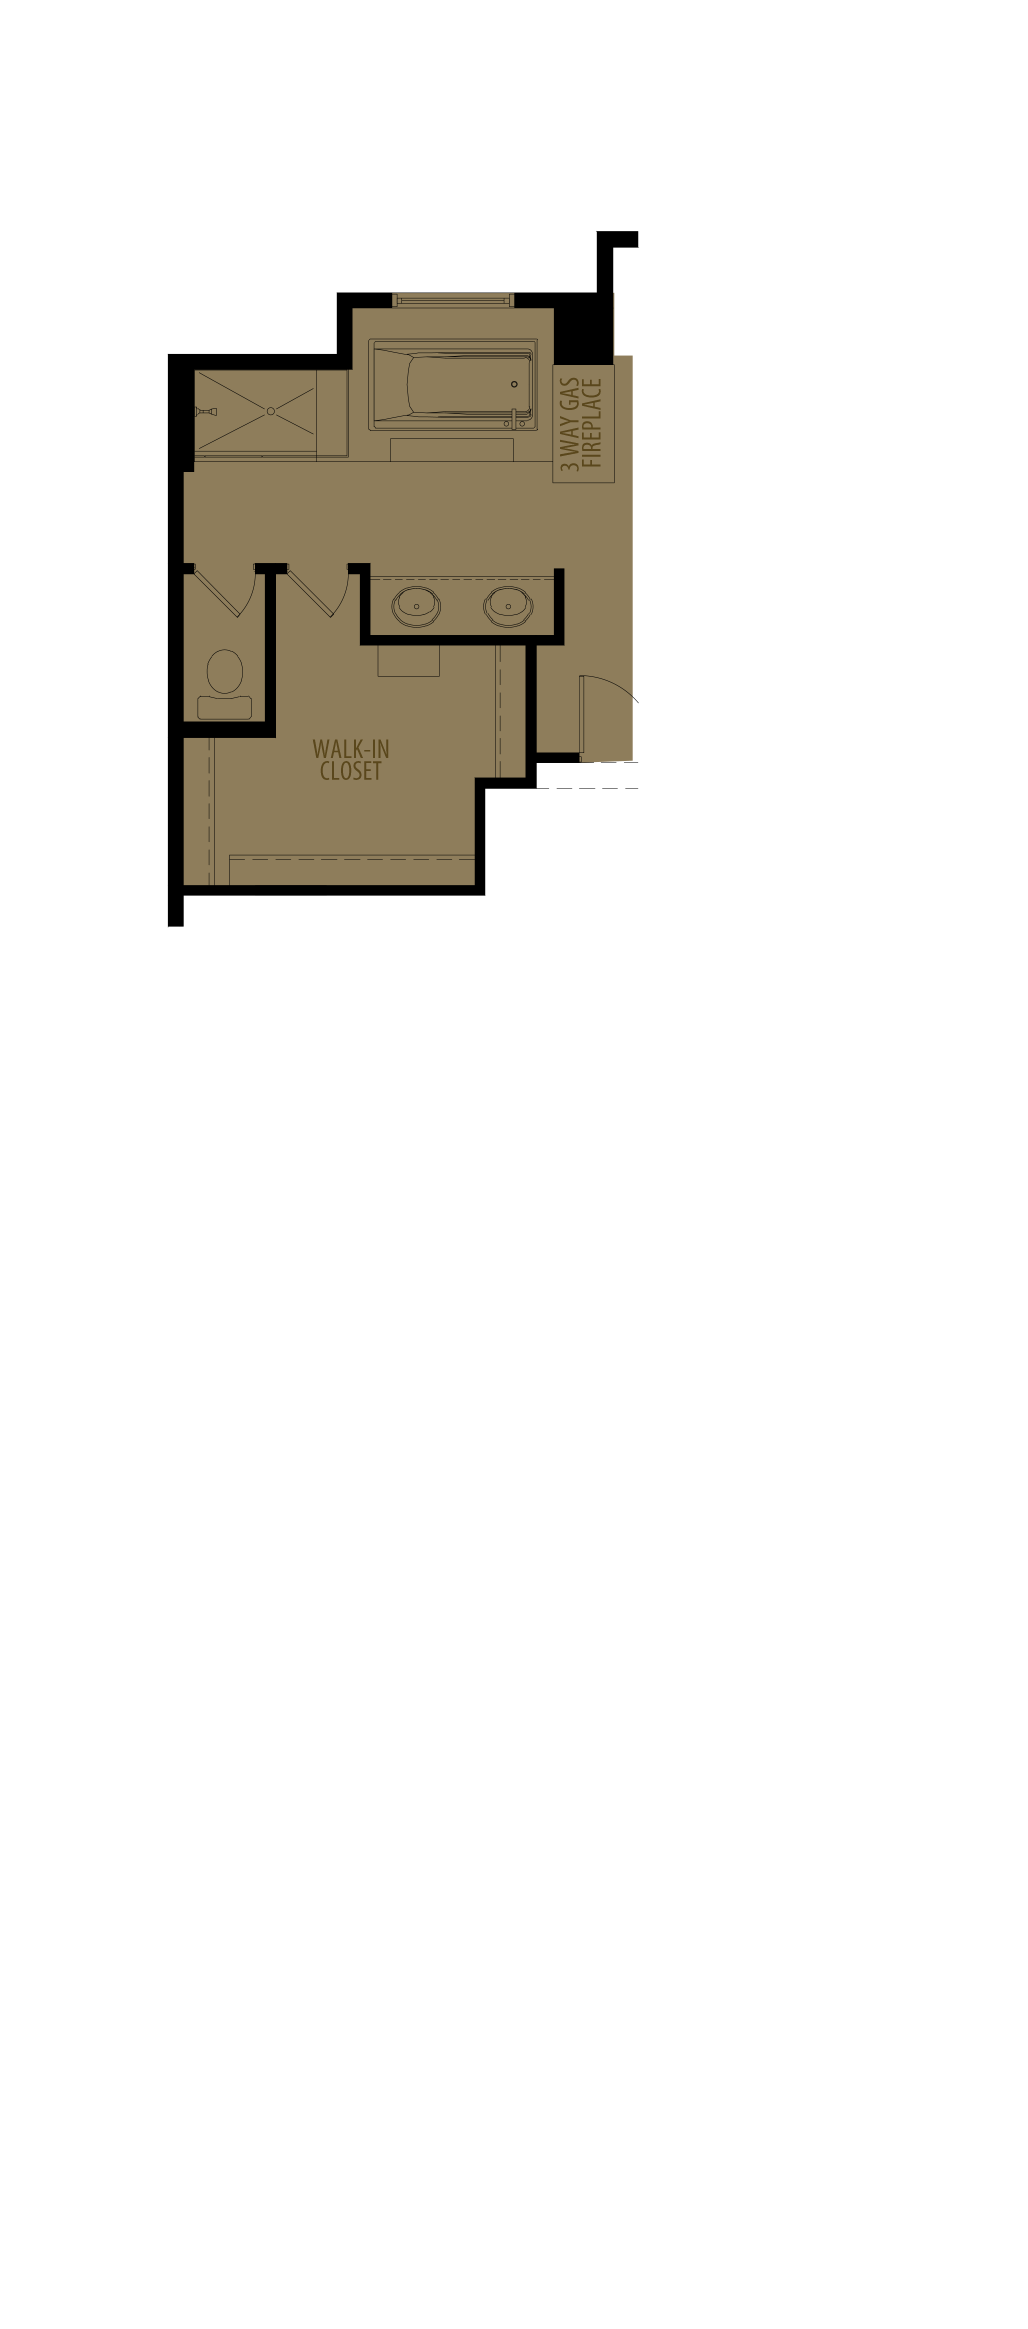 Revised Ensuite Layout (Adds 8 sq ft)